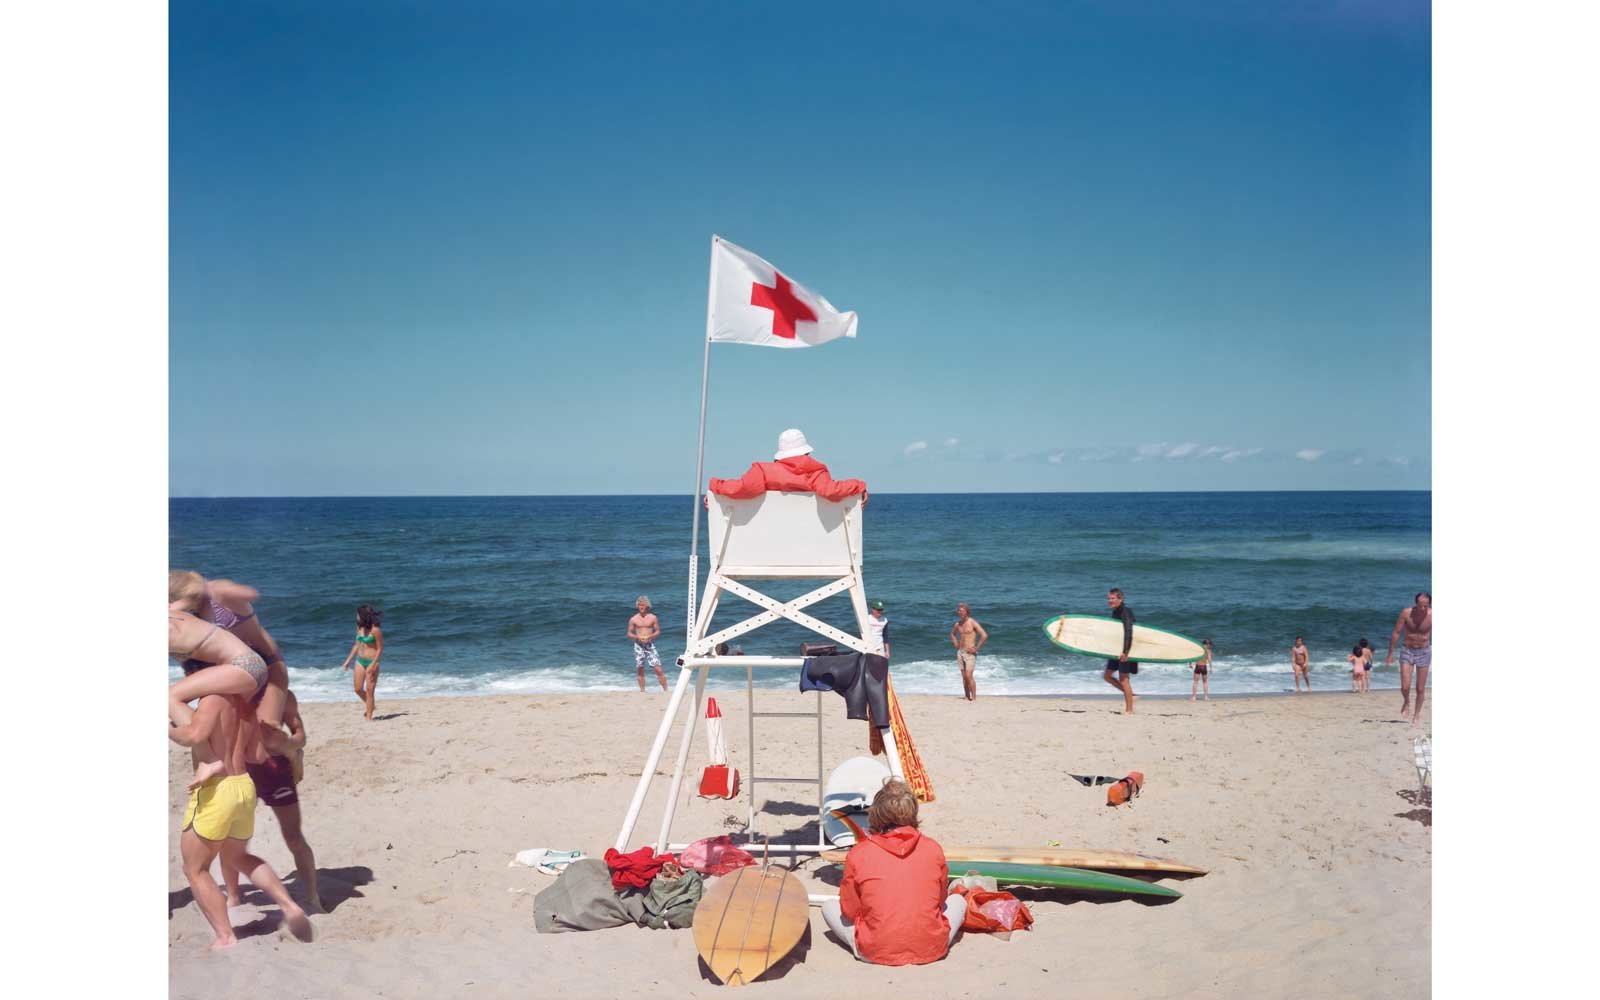 Joel Meyerowitz, Where I Find Myself